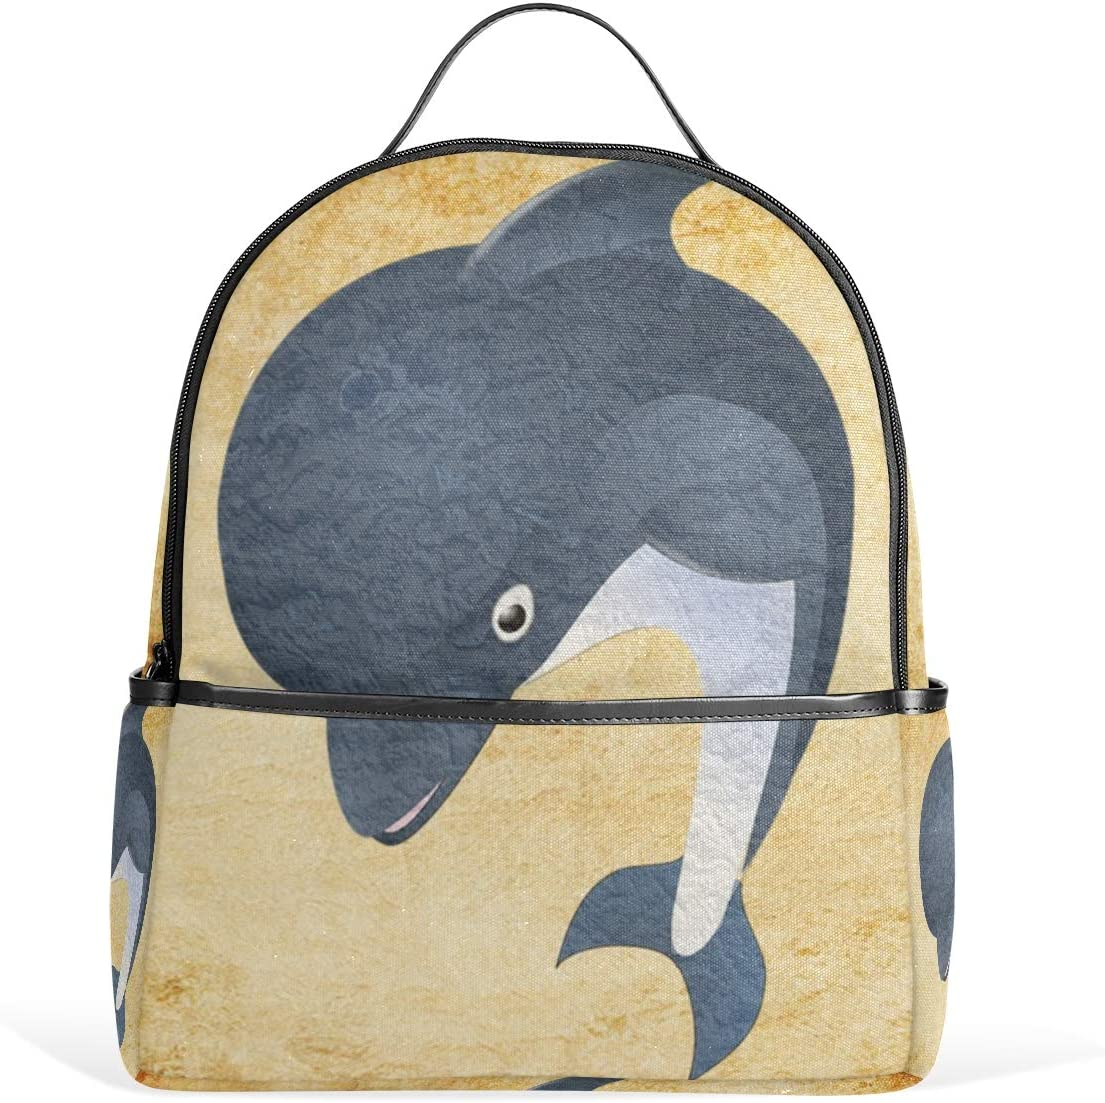 MUOOUM Smile Fish Dolphin Backpack Casual Daypack School College Travel Bag for Teens Boys Girls